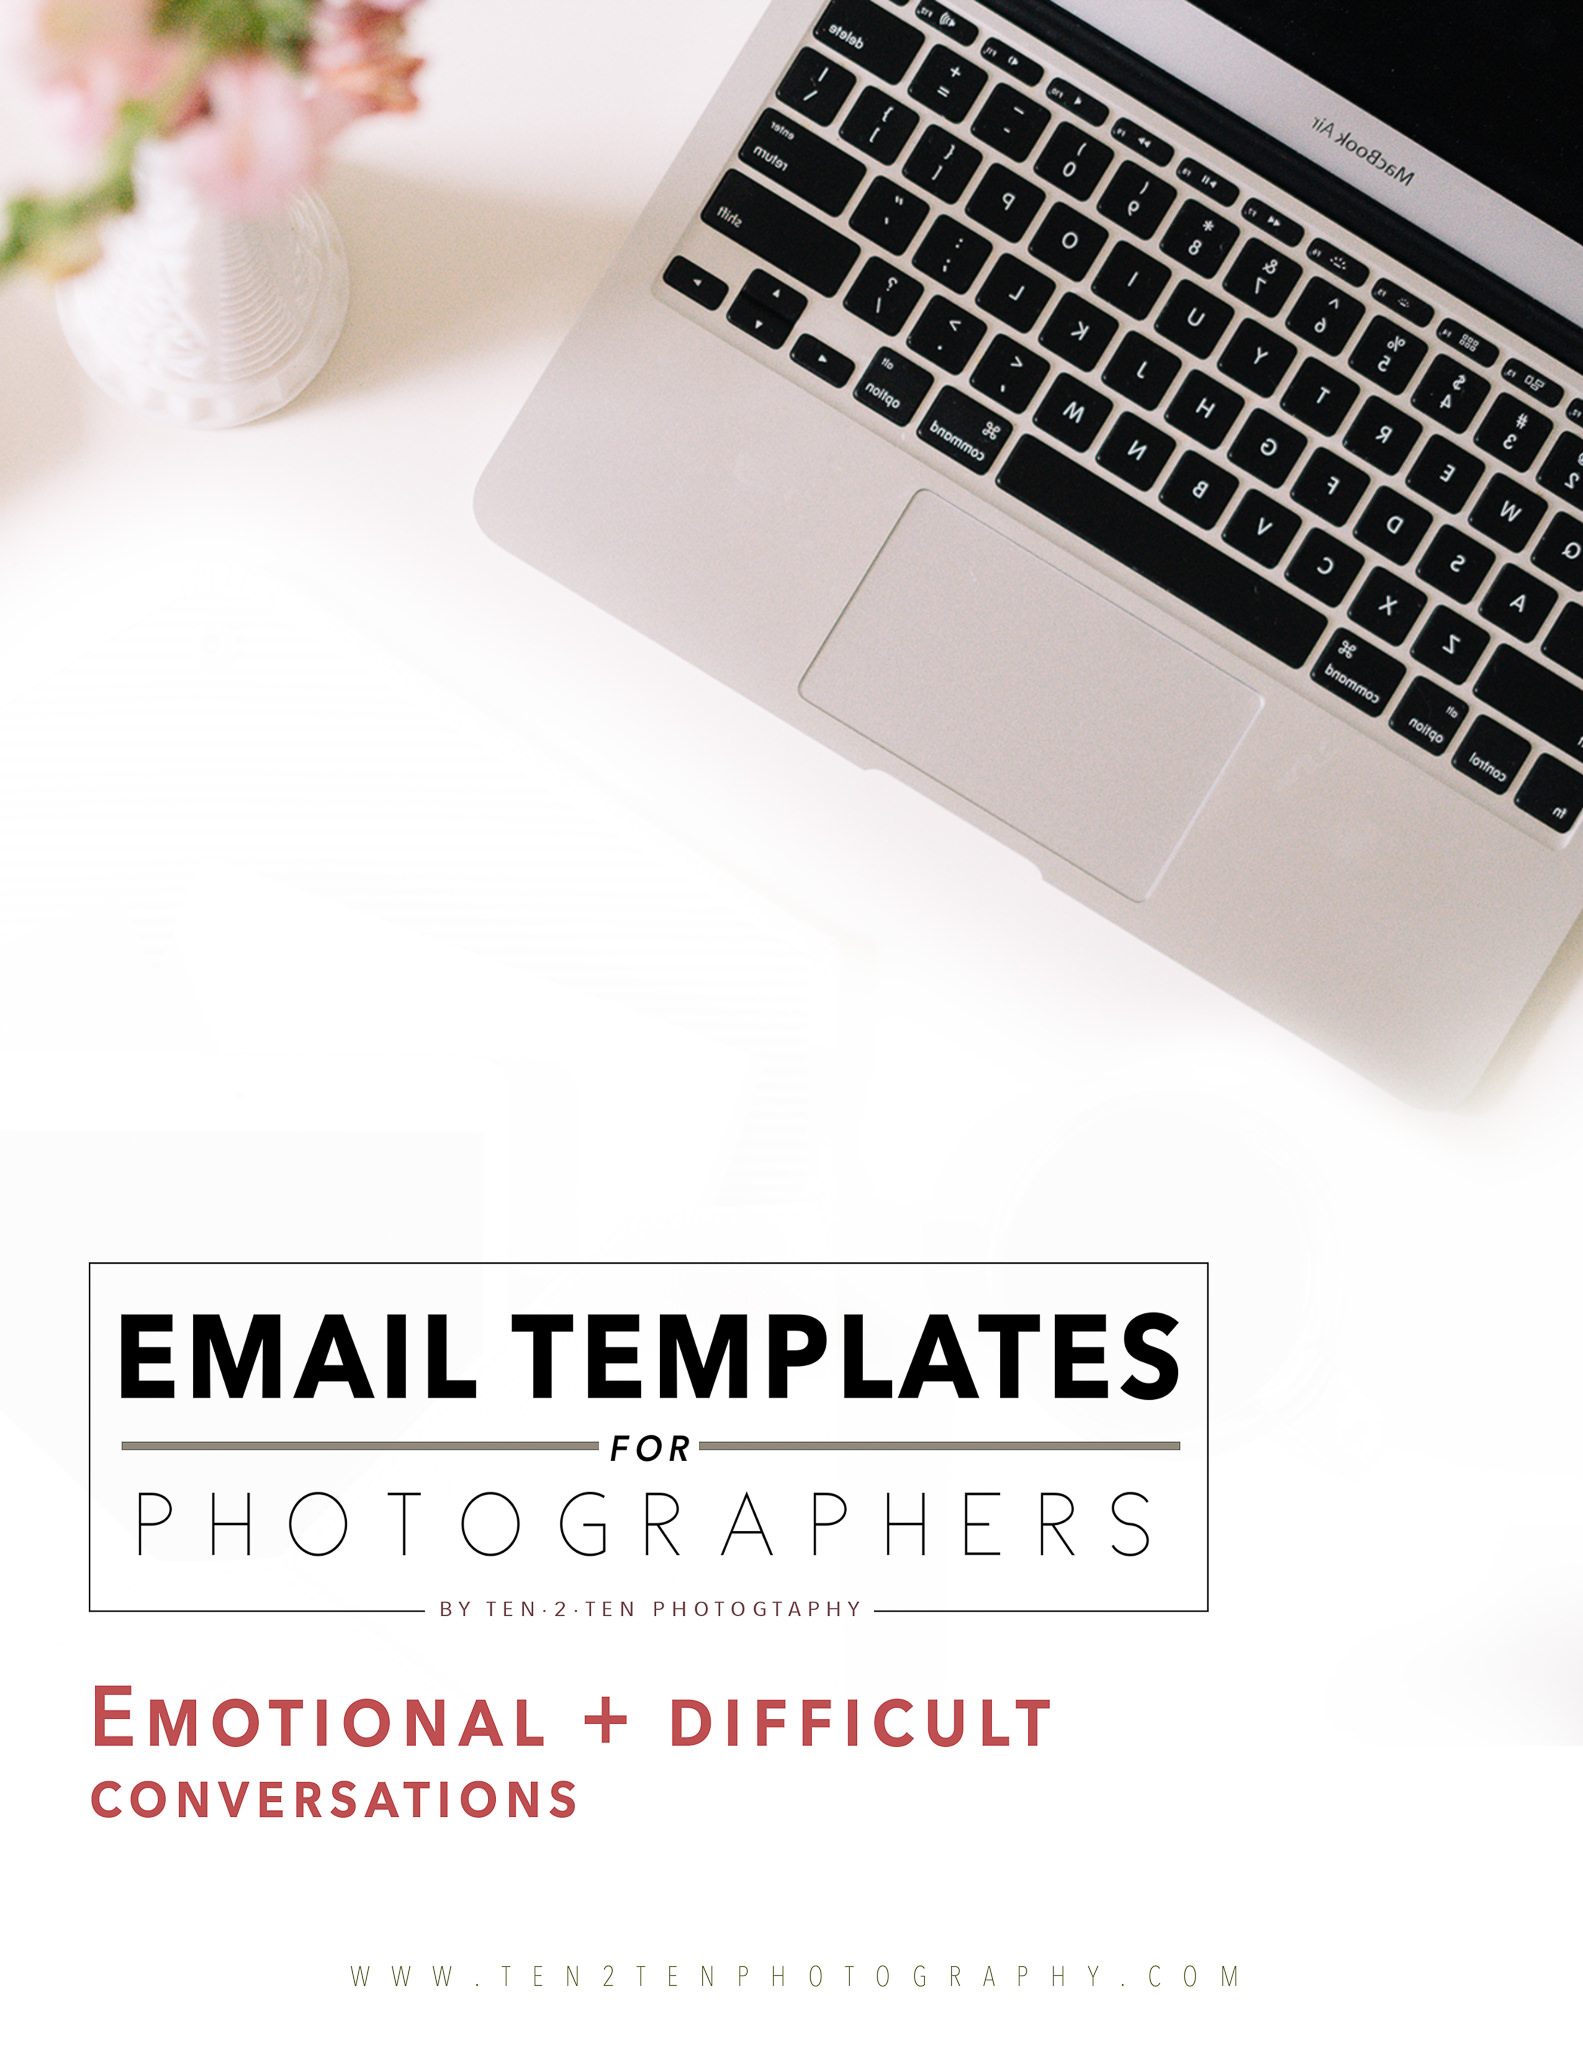 email templates for photographers 10 - Email Templates for Photographers - Emotional + Difficult Conversations